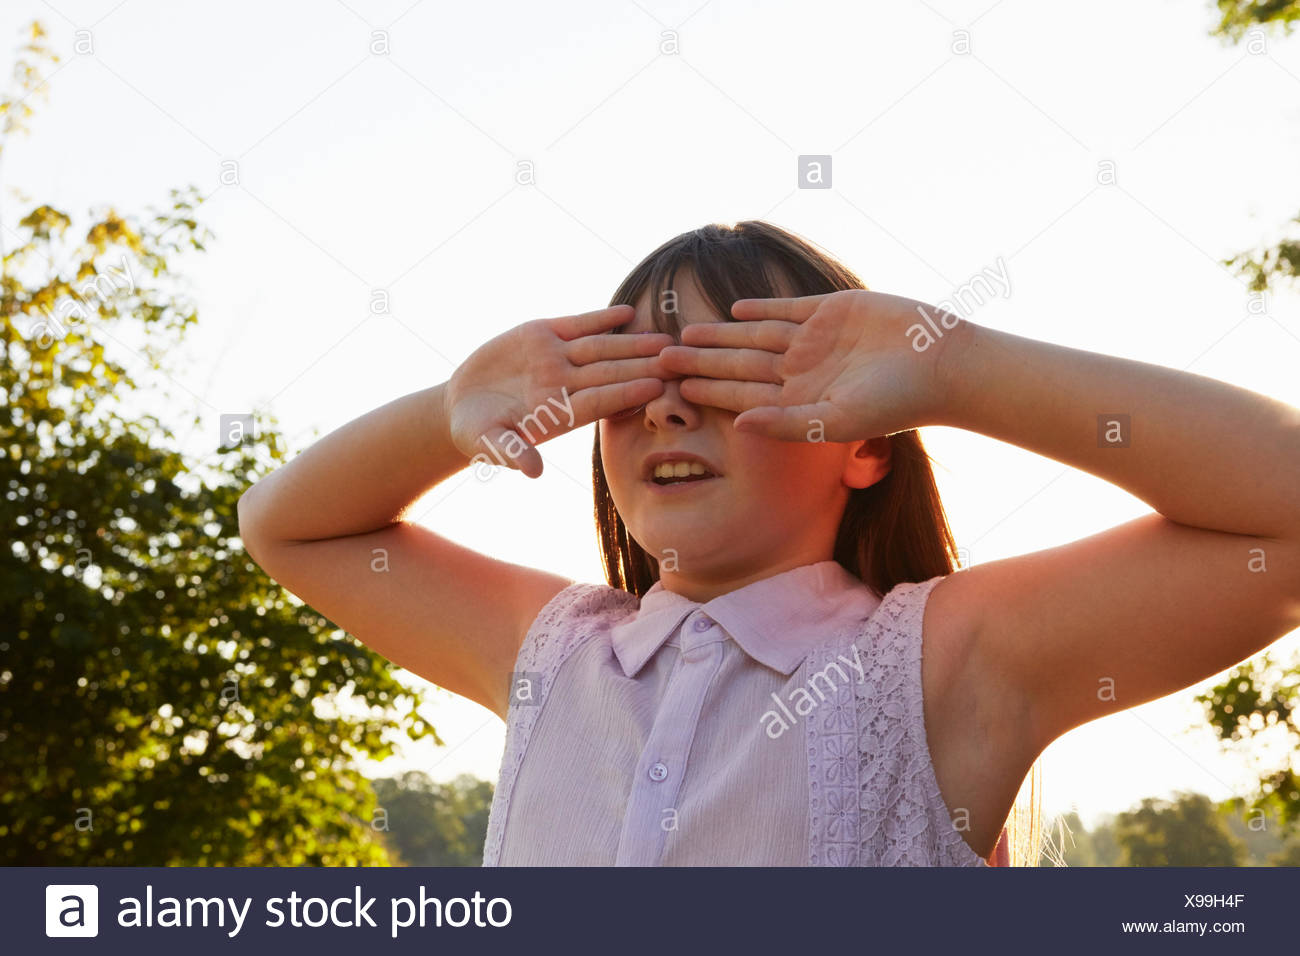 Girl covering eyes for hide and seek in park Stock Photo